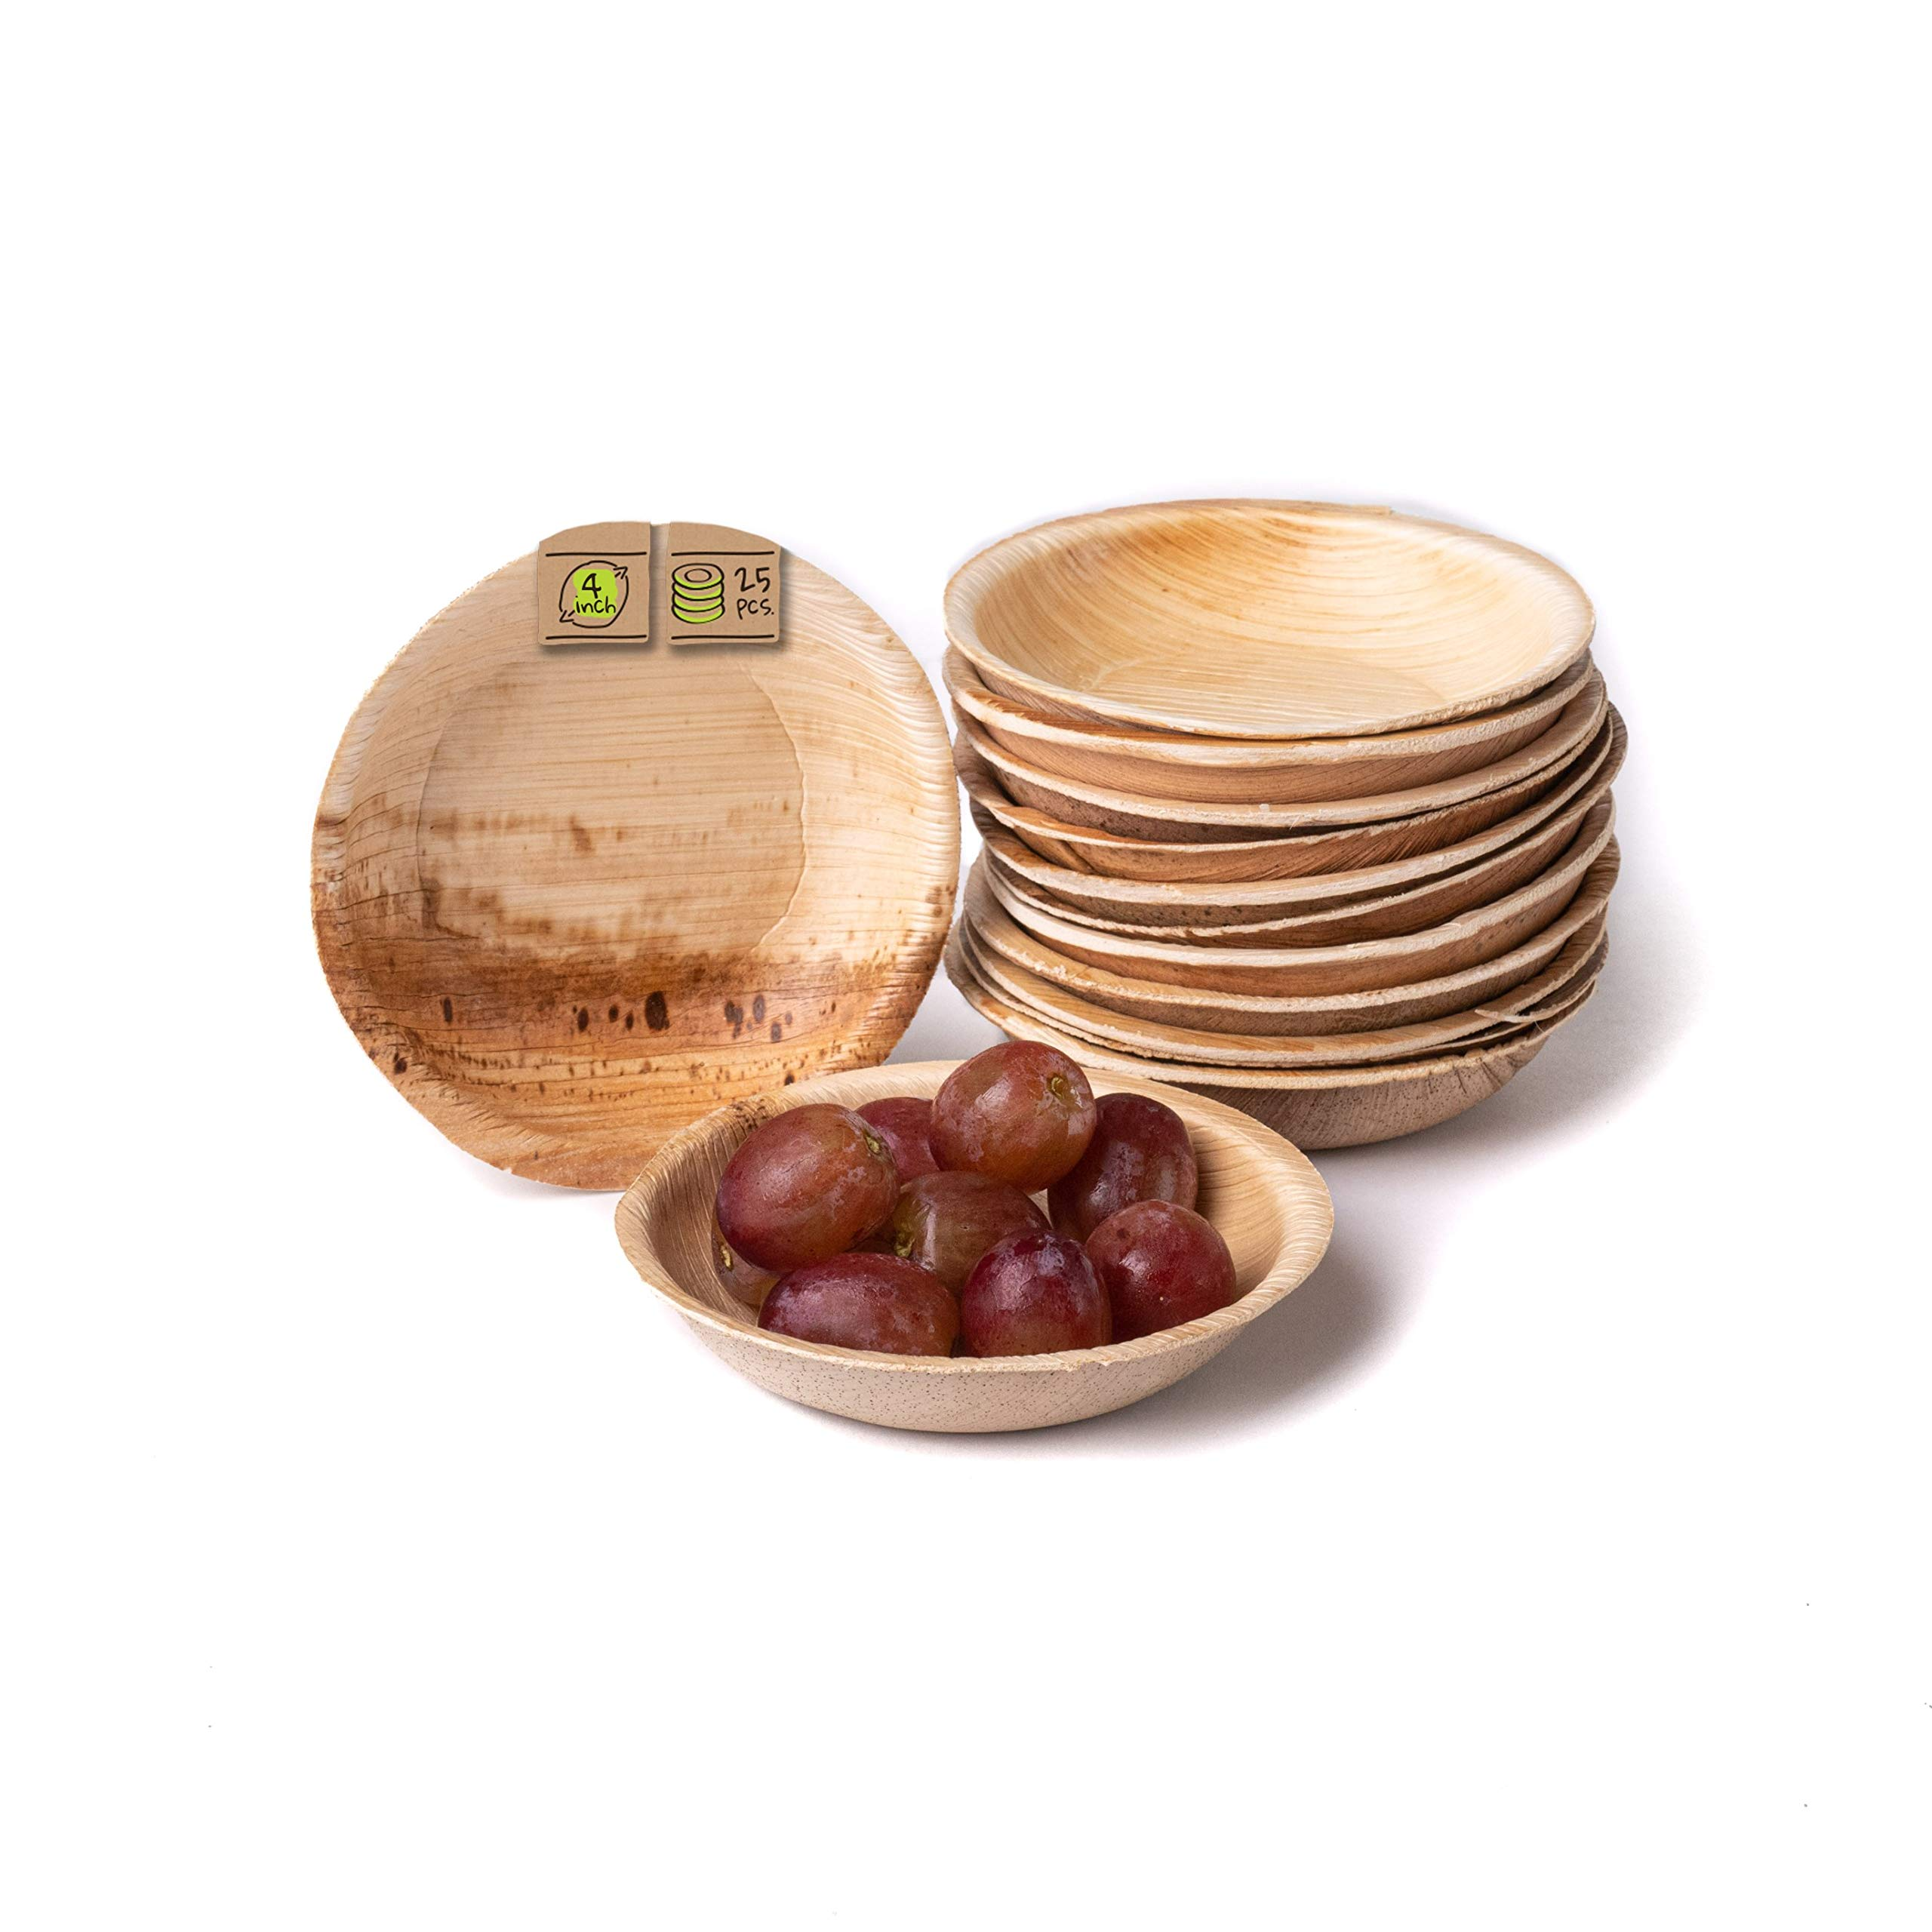 """Naturally Chic Compostable Biodegradable Disposable Plates - Palm Leaf 4"""" Round, Small Dinnerware Set - Eco Friendly Alternative - Party, Wedding, Event Plates (25 Pack)"""